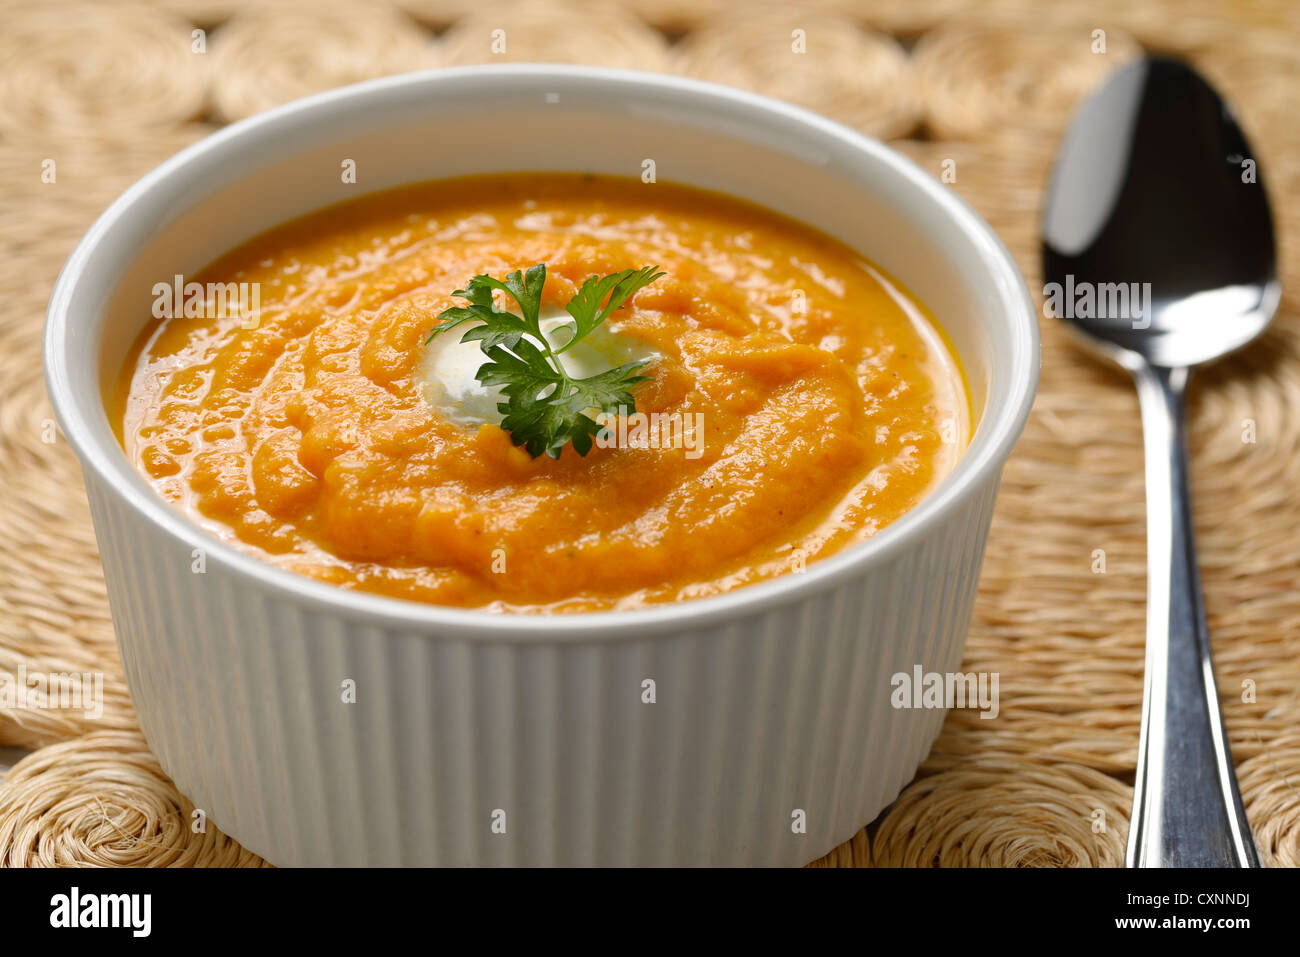 Carrot soup with cream and parsley in white bowl on woven grass placemat and spoon - Stock Image